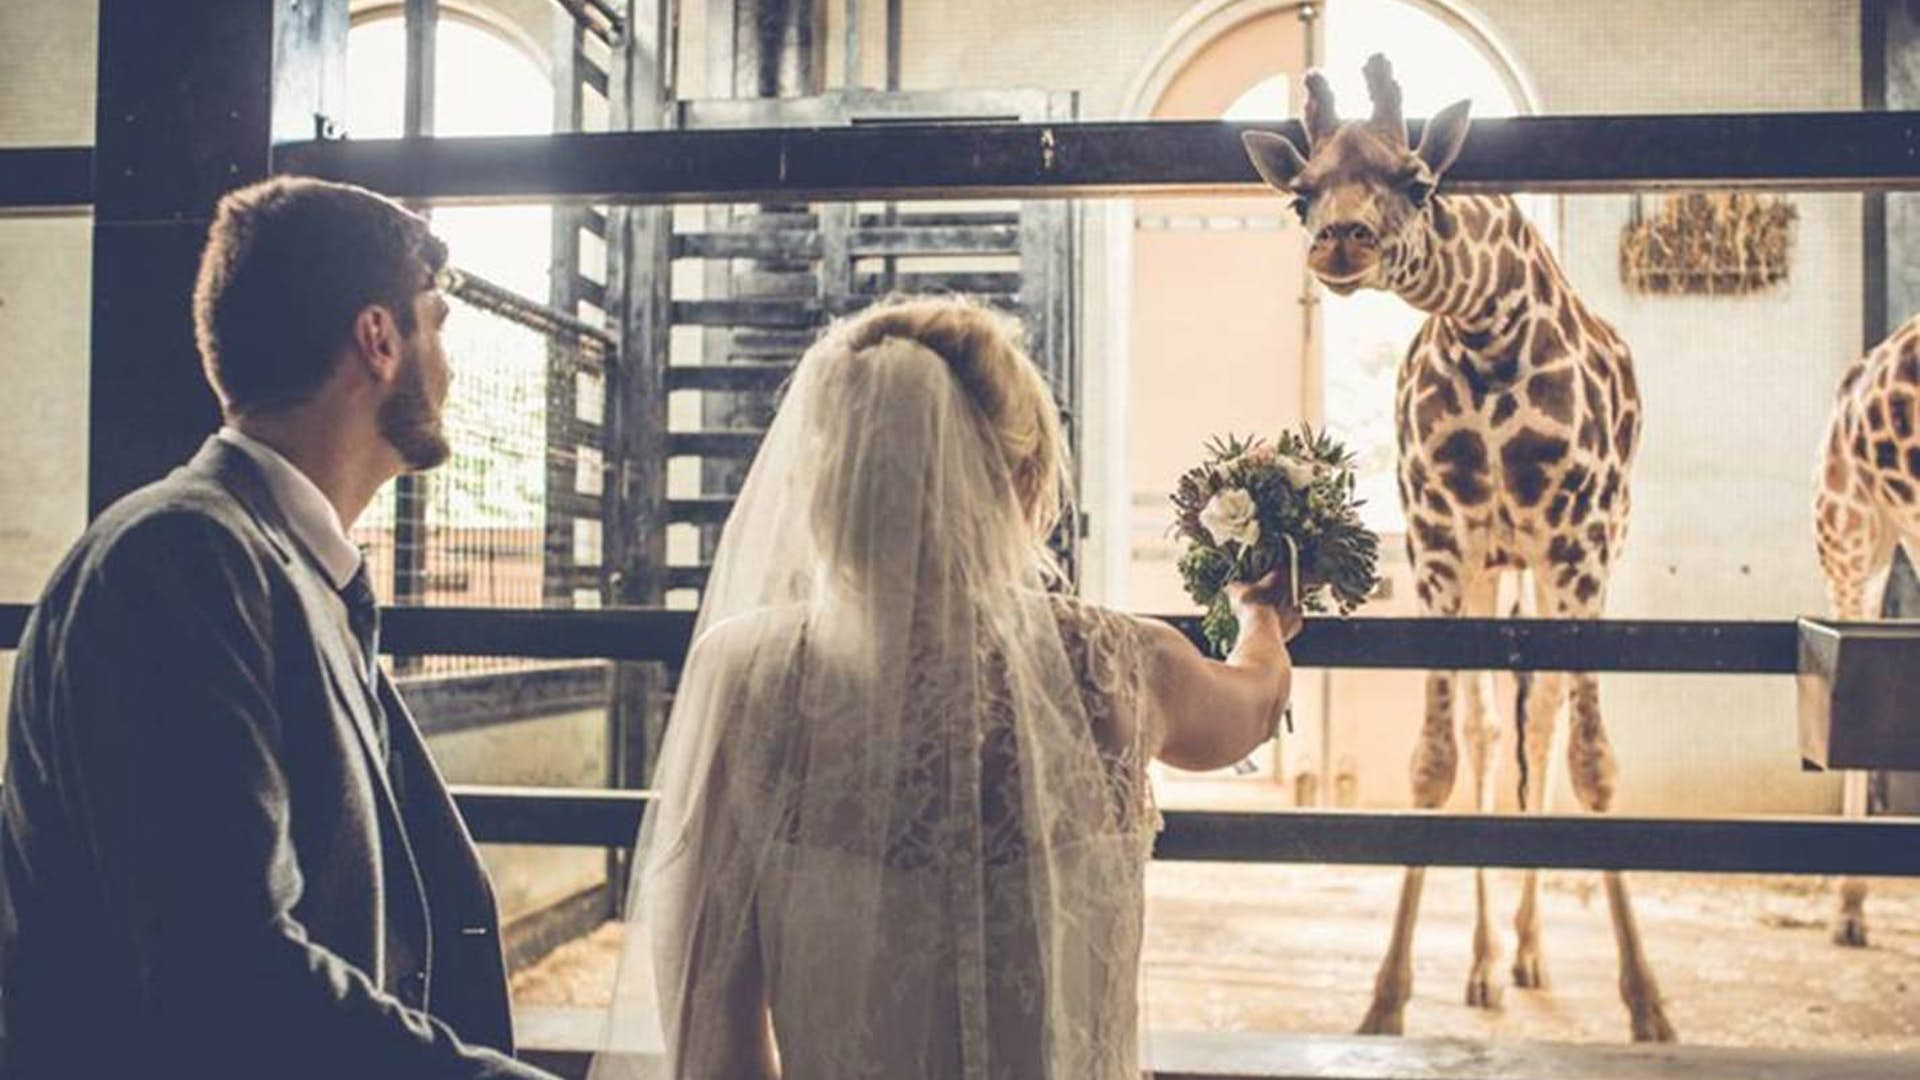 London-Zoo-autumn-wedding-giraffe-1